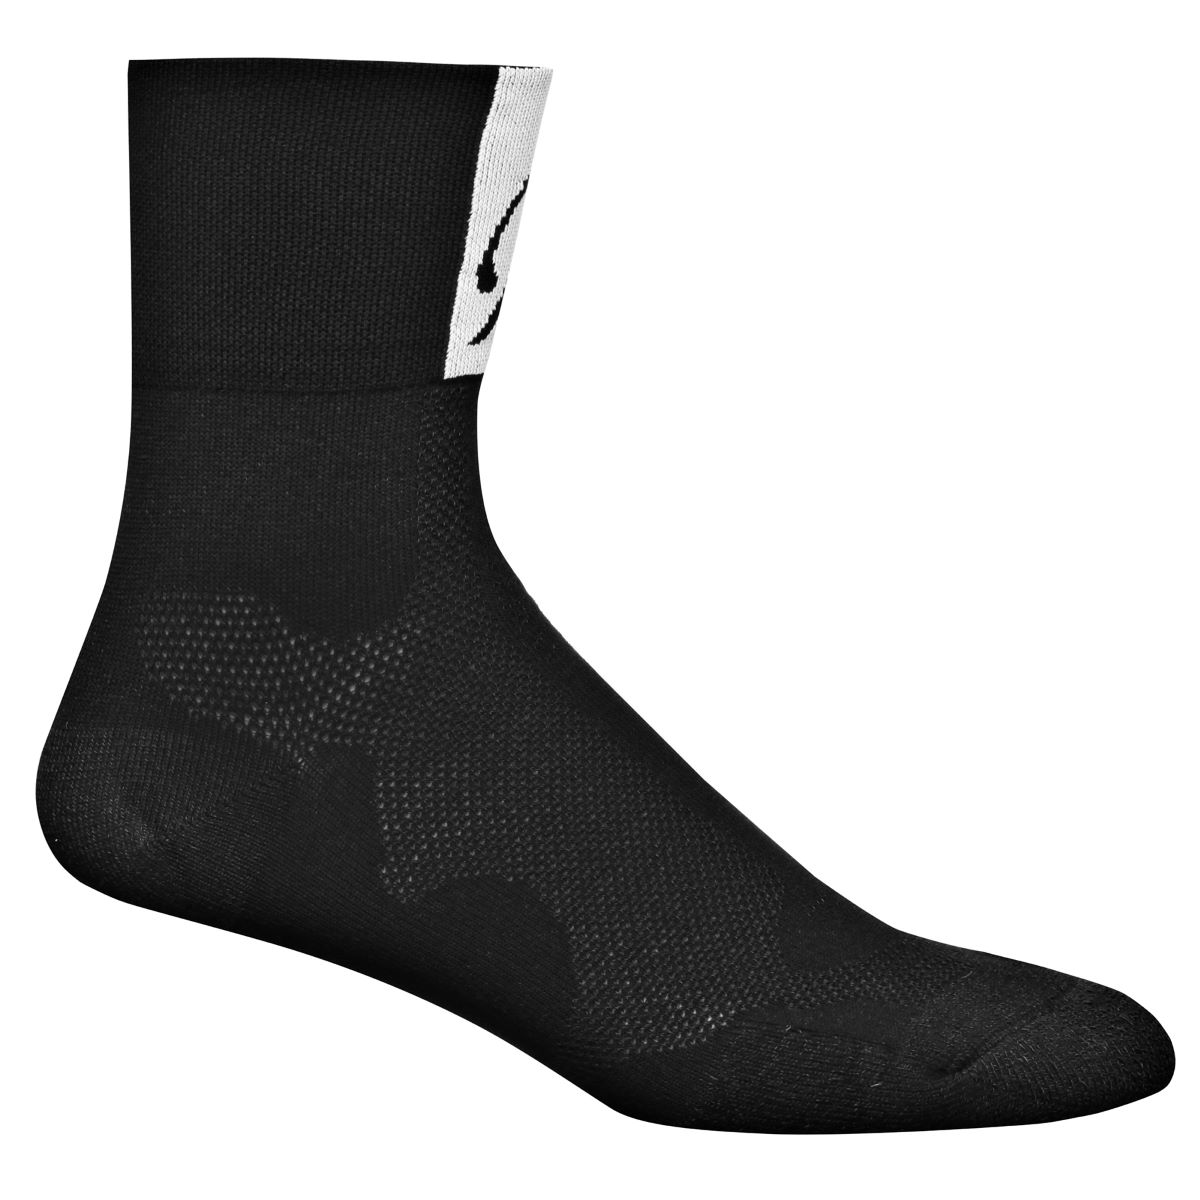 Image of Chaussettes Isadore - Extra Large Noir | Chaussettes